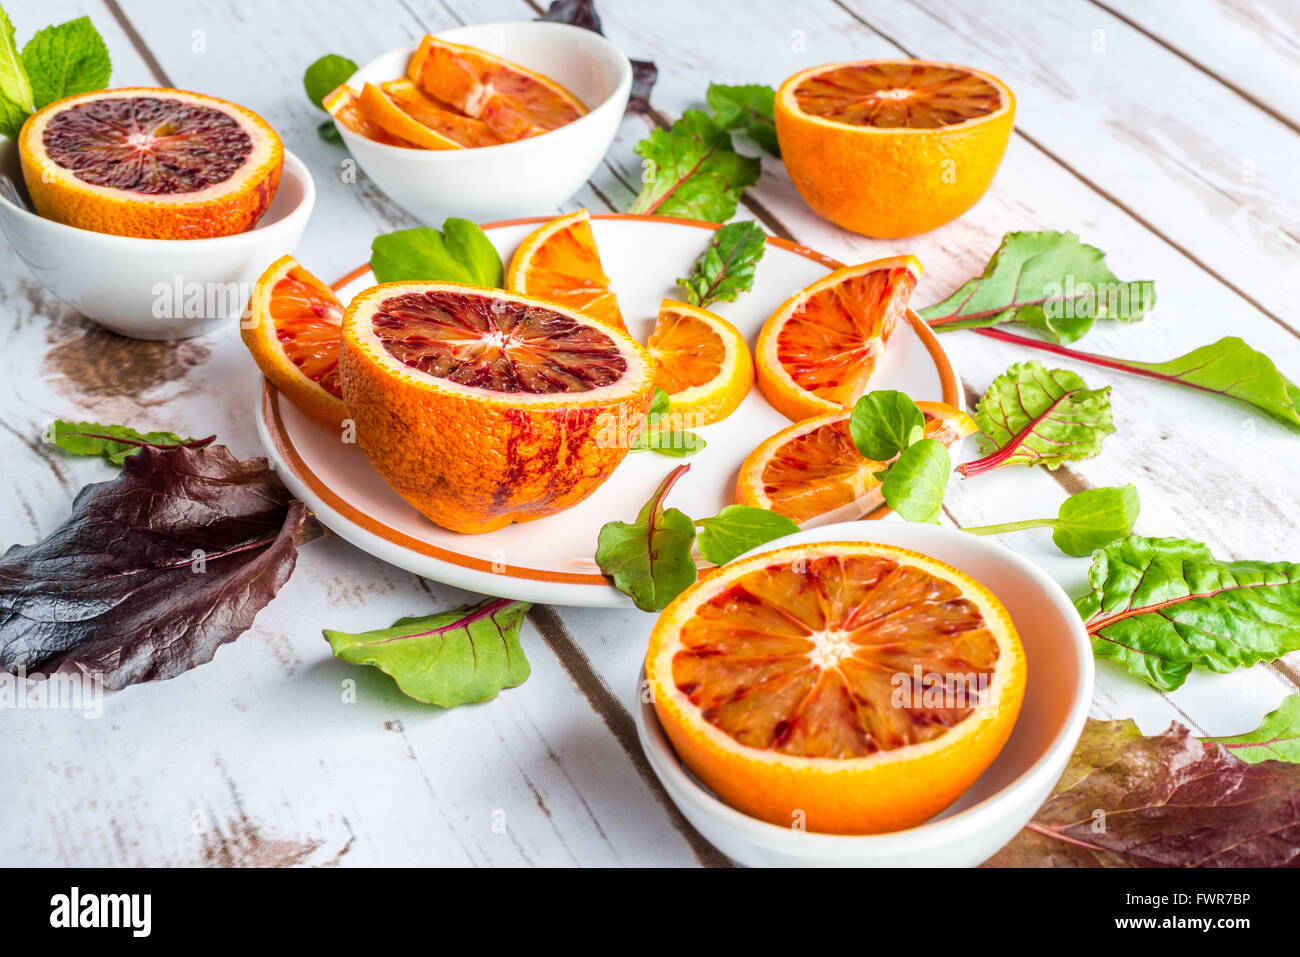 Blood oranges on white plates with green salad leaves - Stock Image